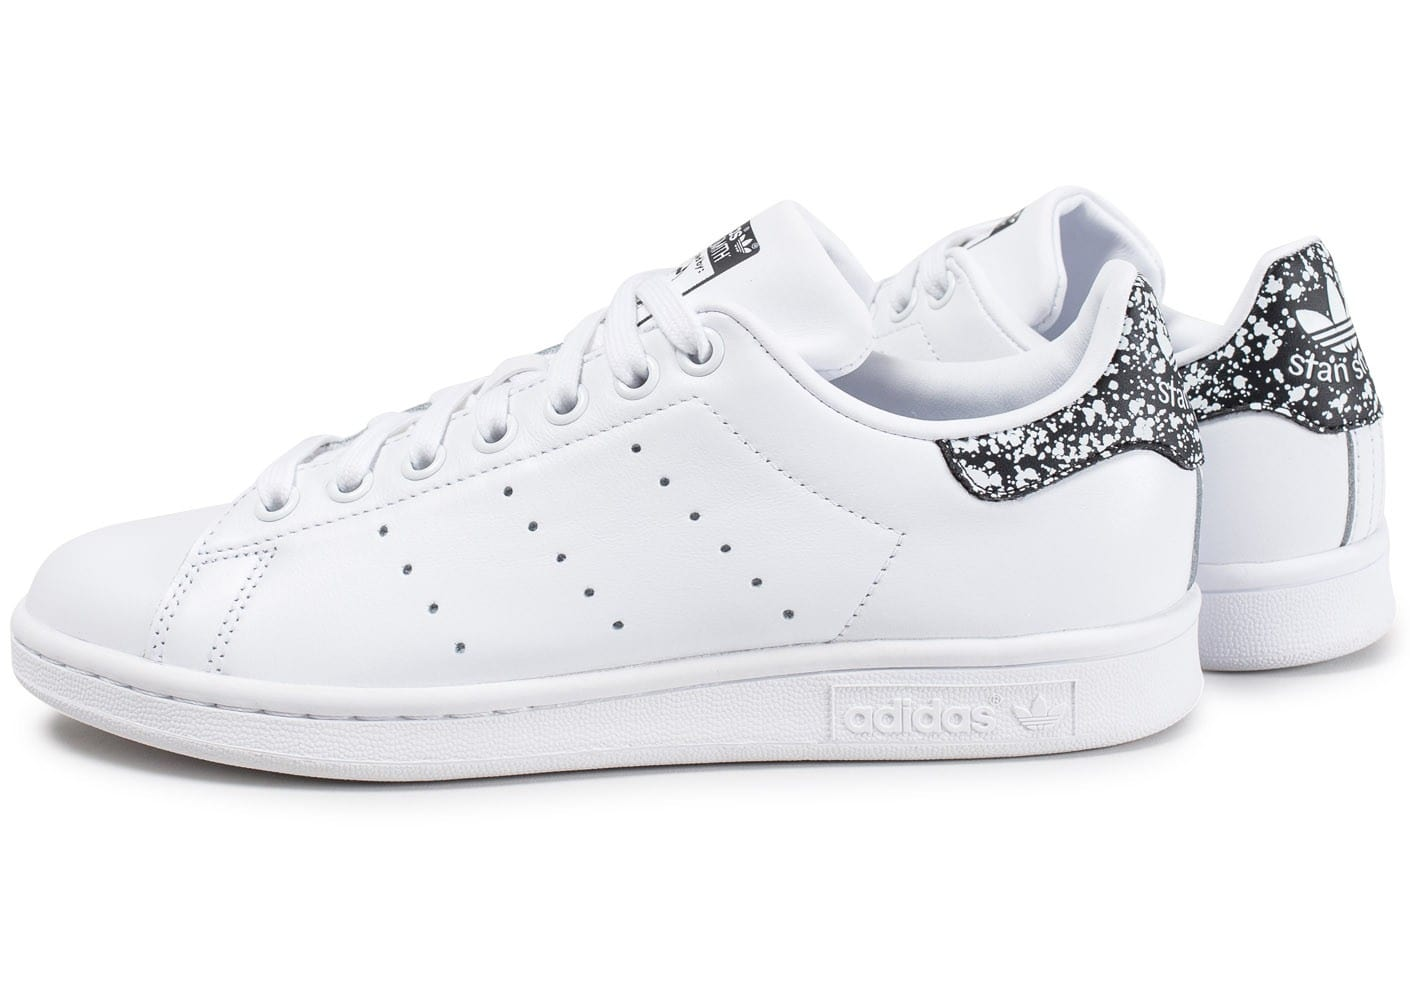 adidas stan smith w blanche et noire chaussures adidas chausport. Black Bedroom Furniture Sets. Home Design Ideas